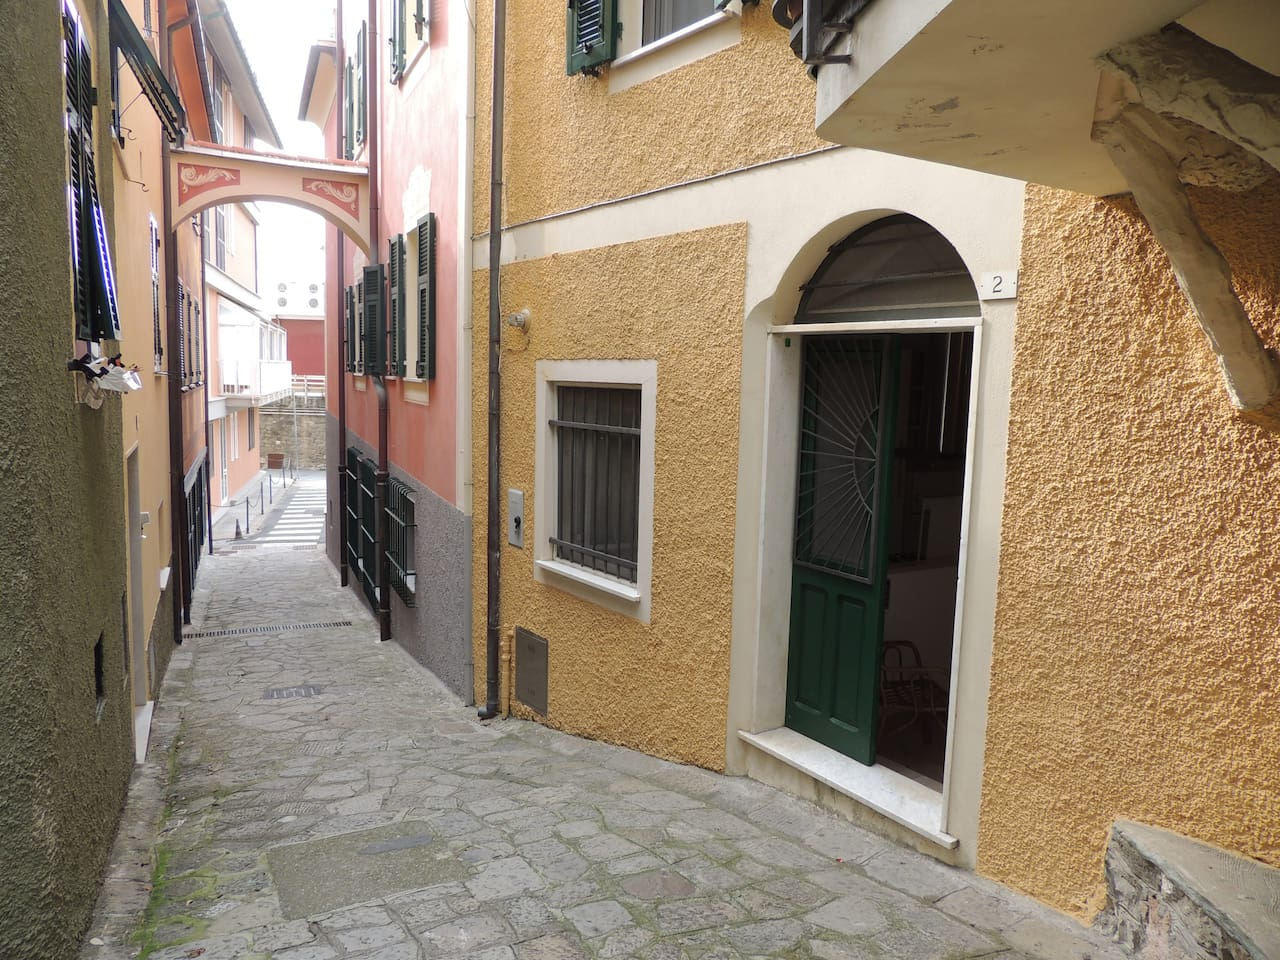 5 minutes walk from the sea in a very quiet and picturesque corner